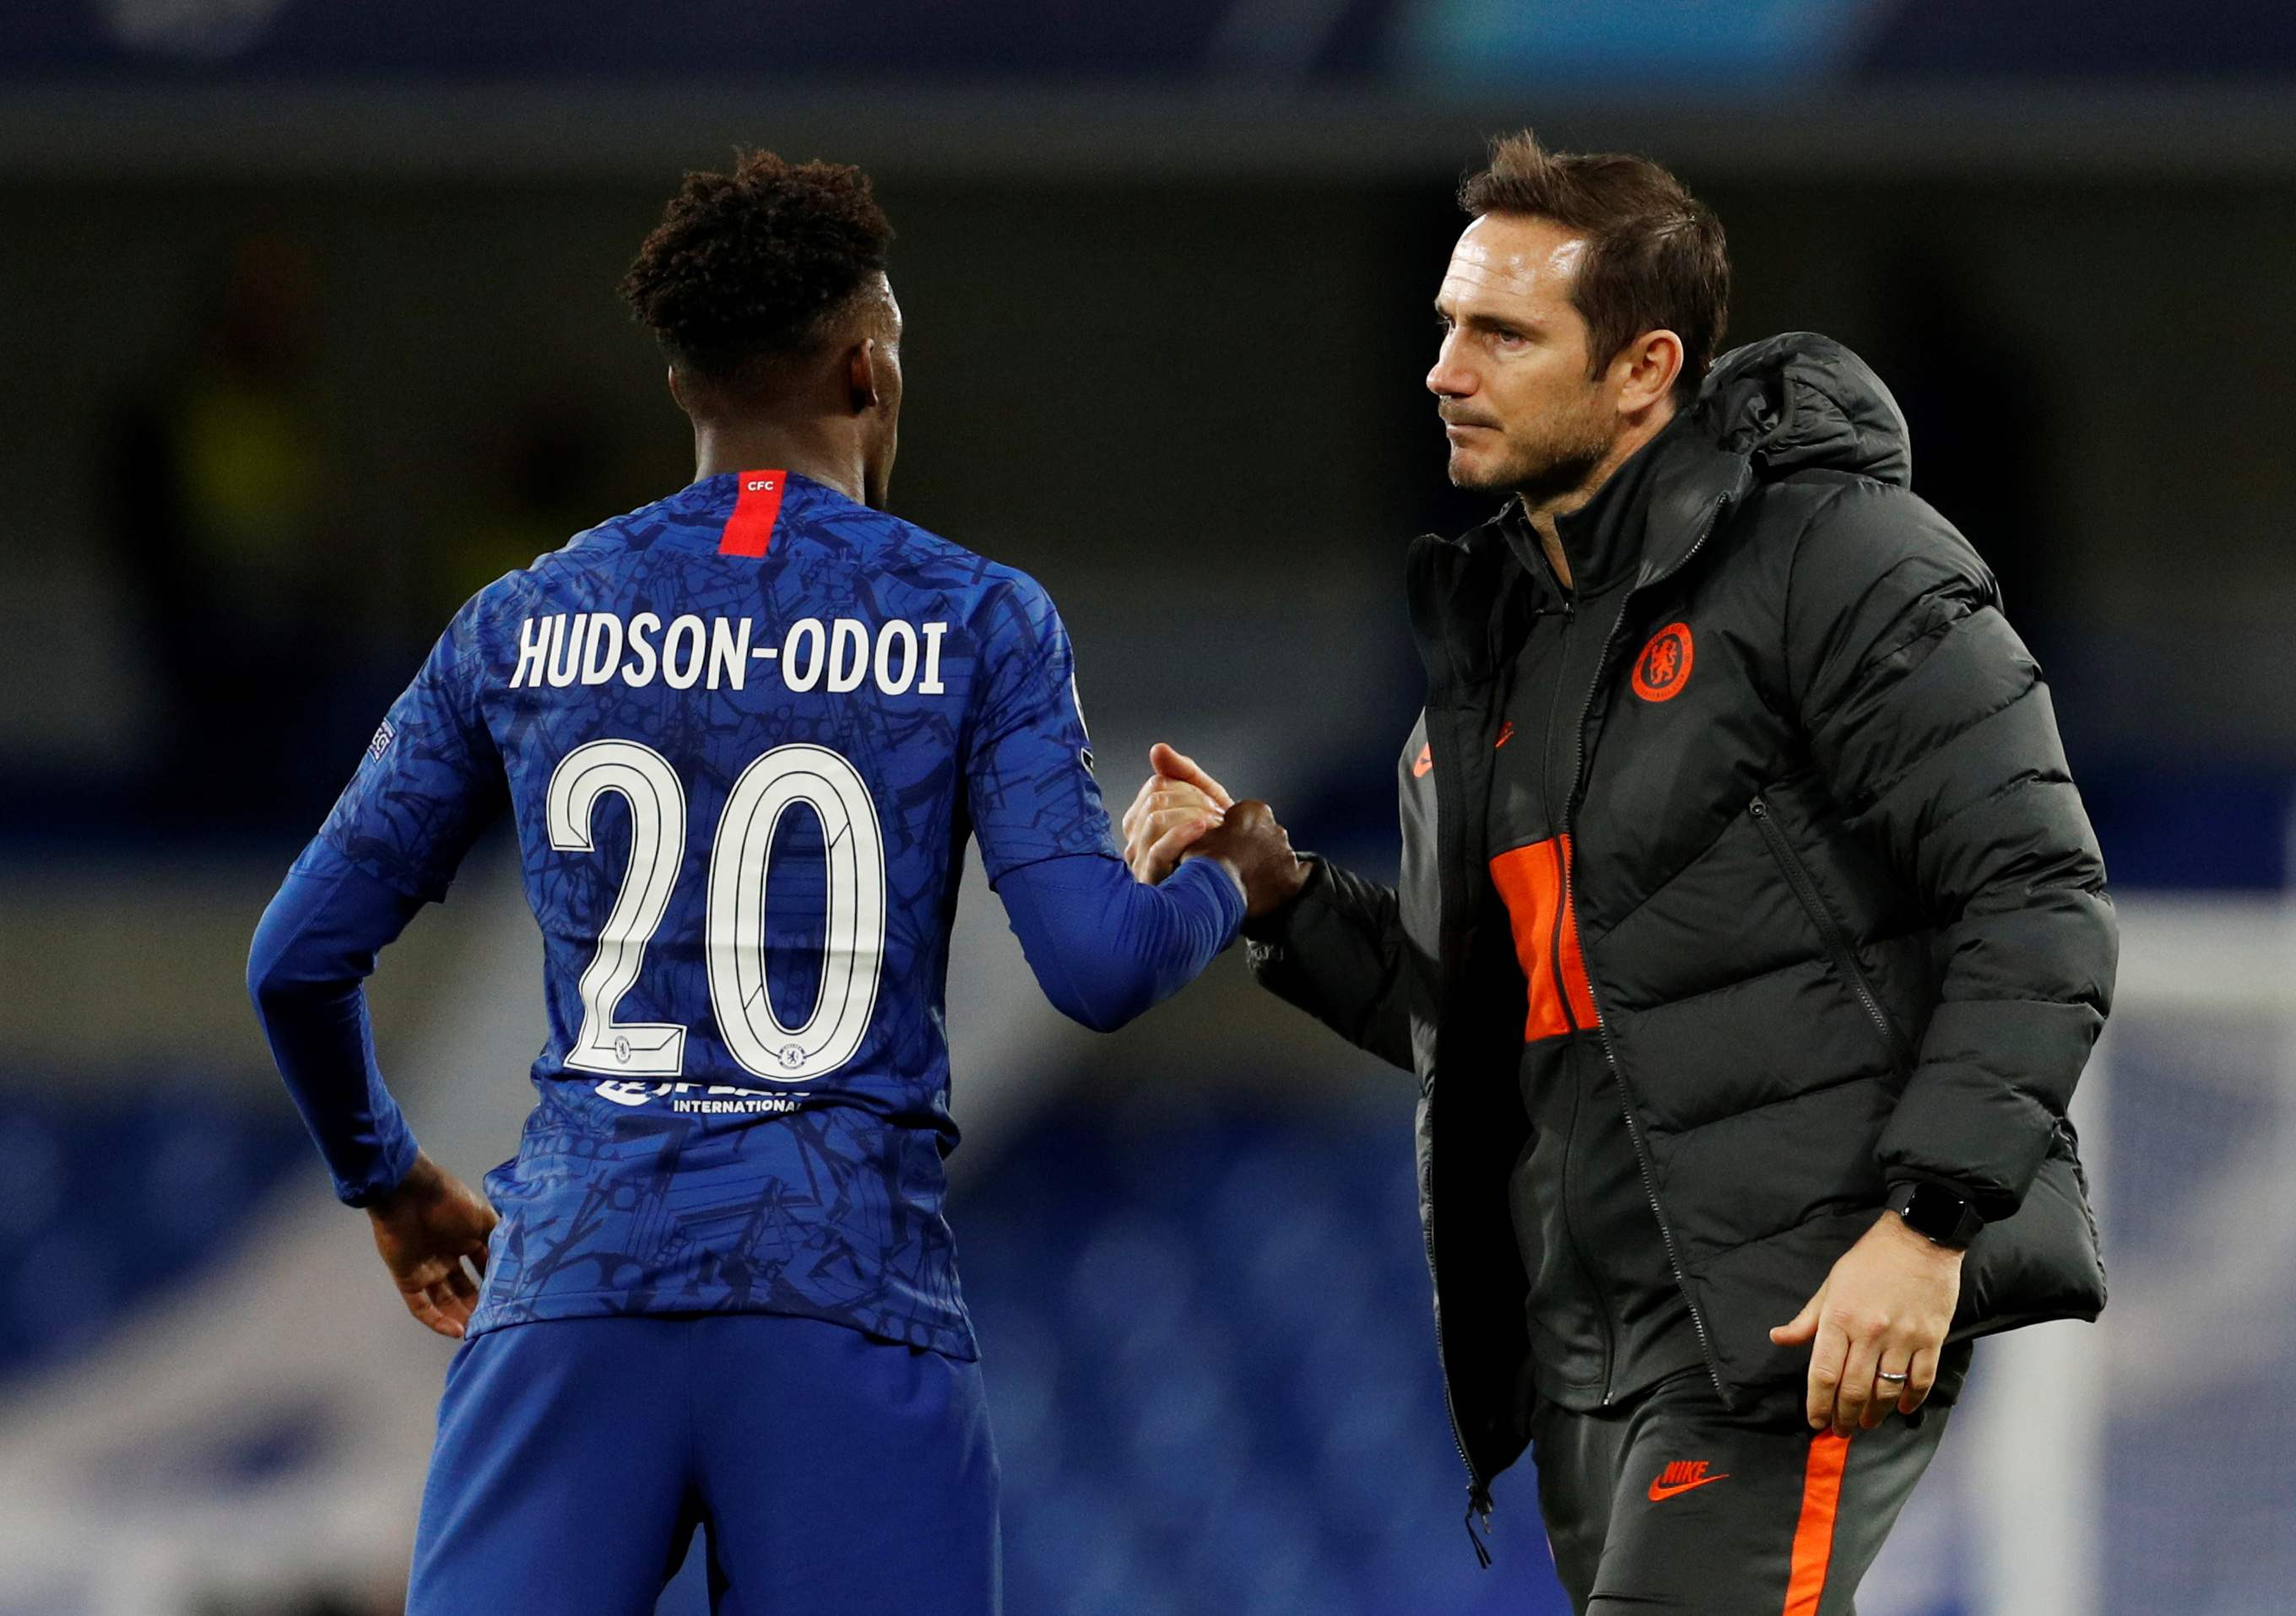 Hudson-Odoi shares opinion about Lampard's fine system